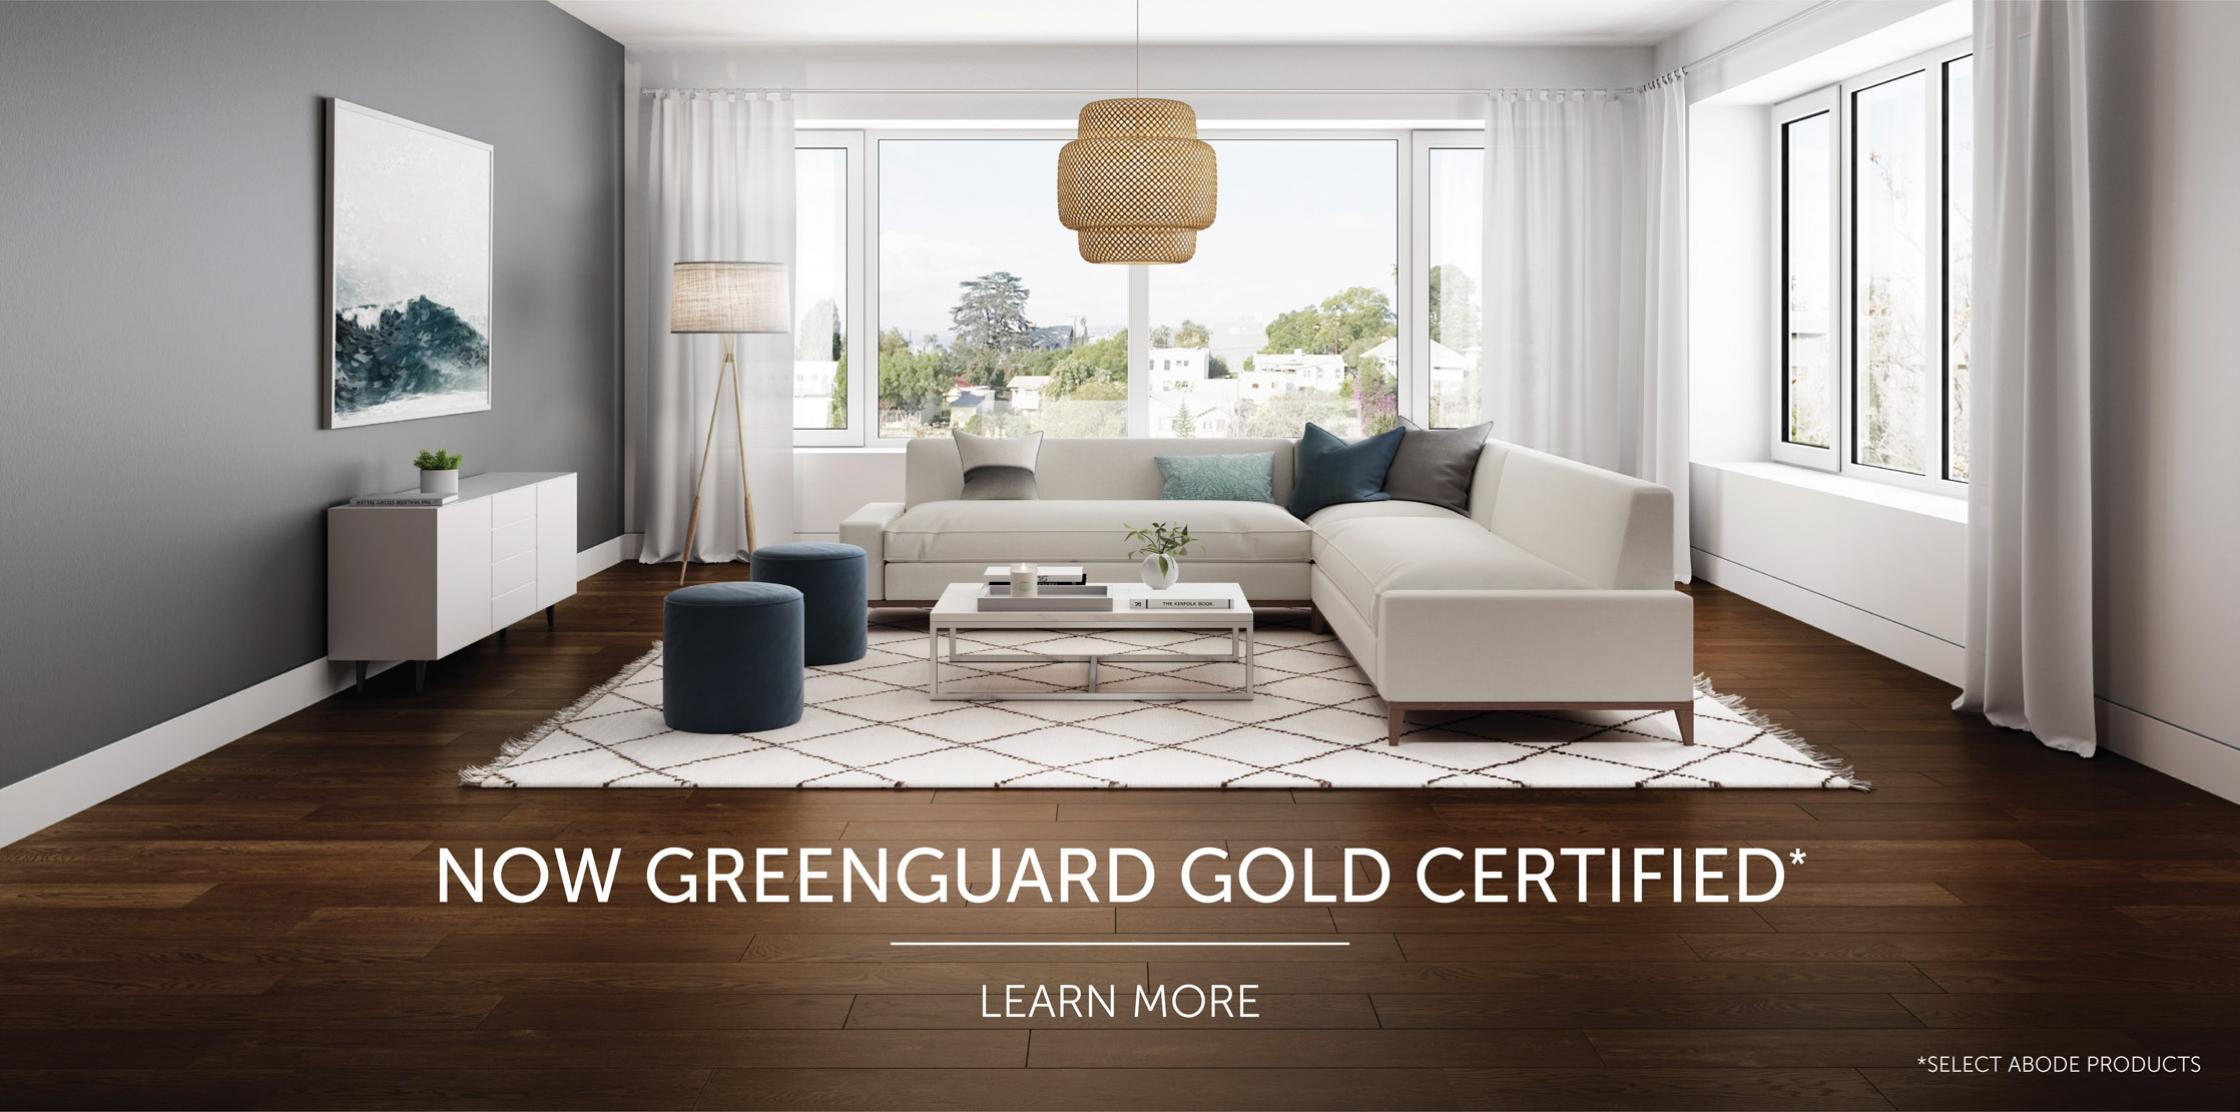 Selected Abode Products Now Greenguard Gold Certified